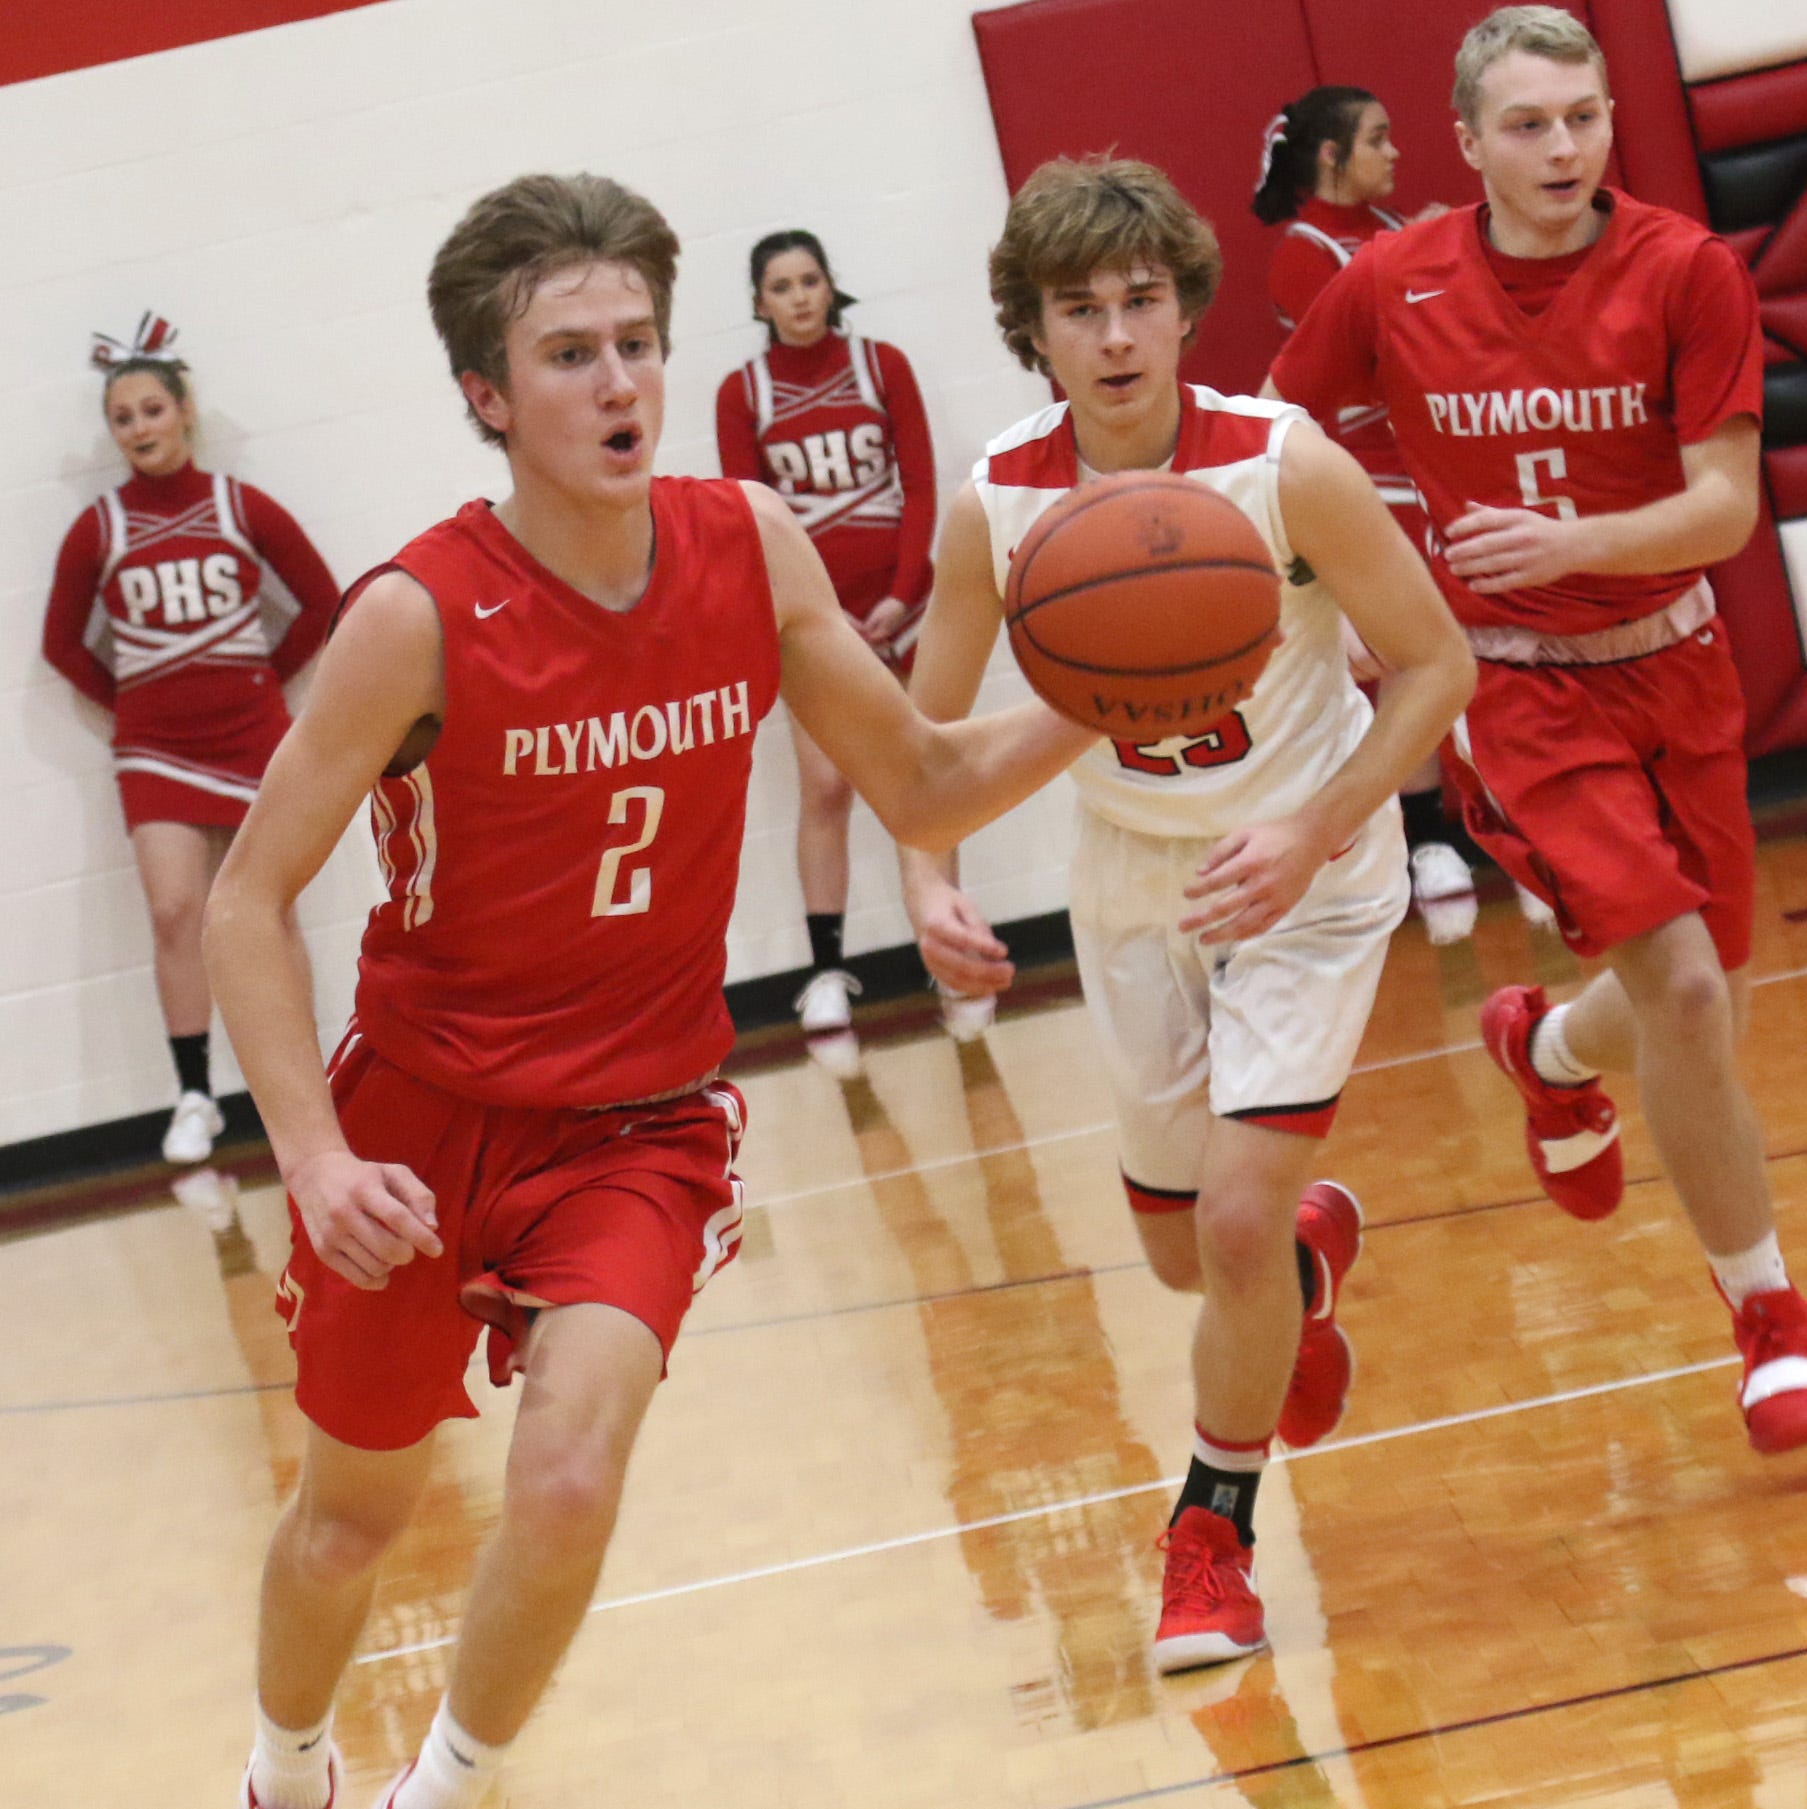 Plymouth's Jacob Adams has special connection in 1,000-point club